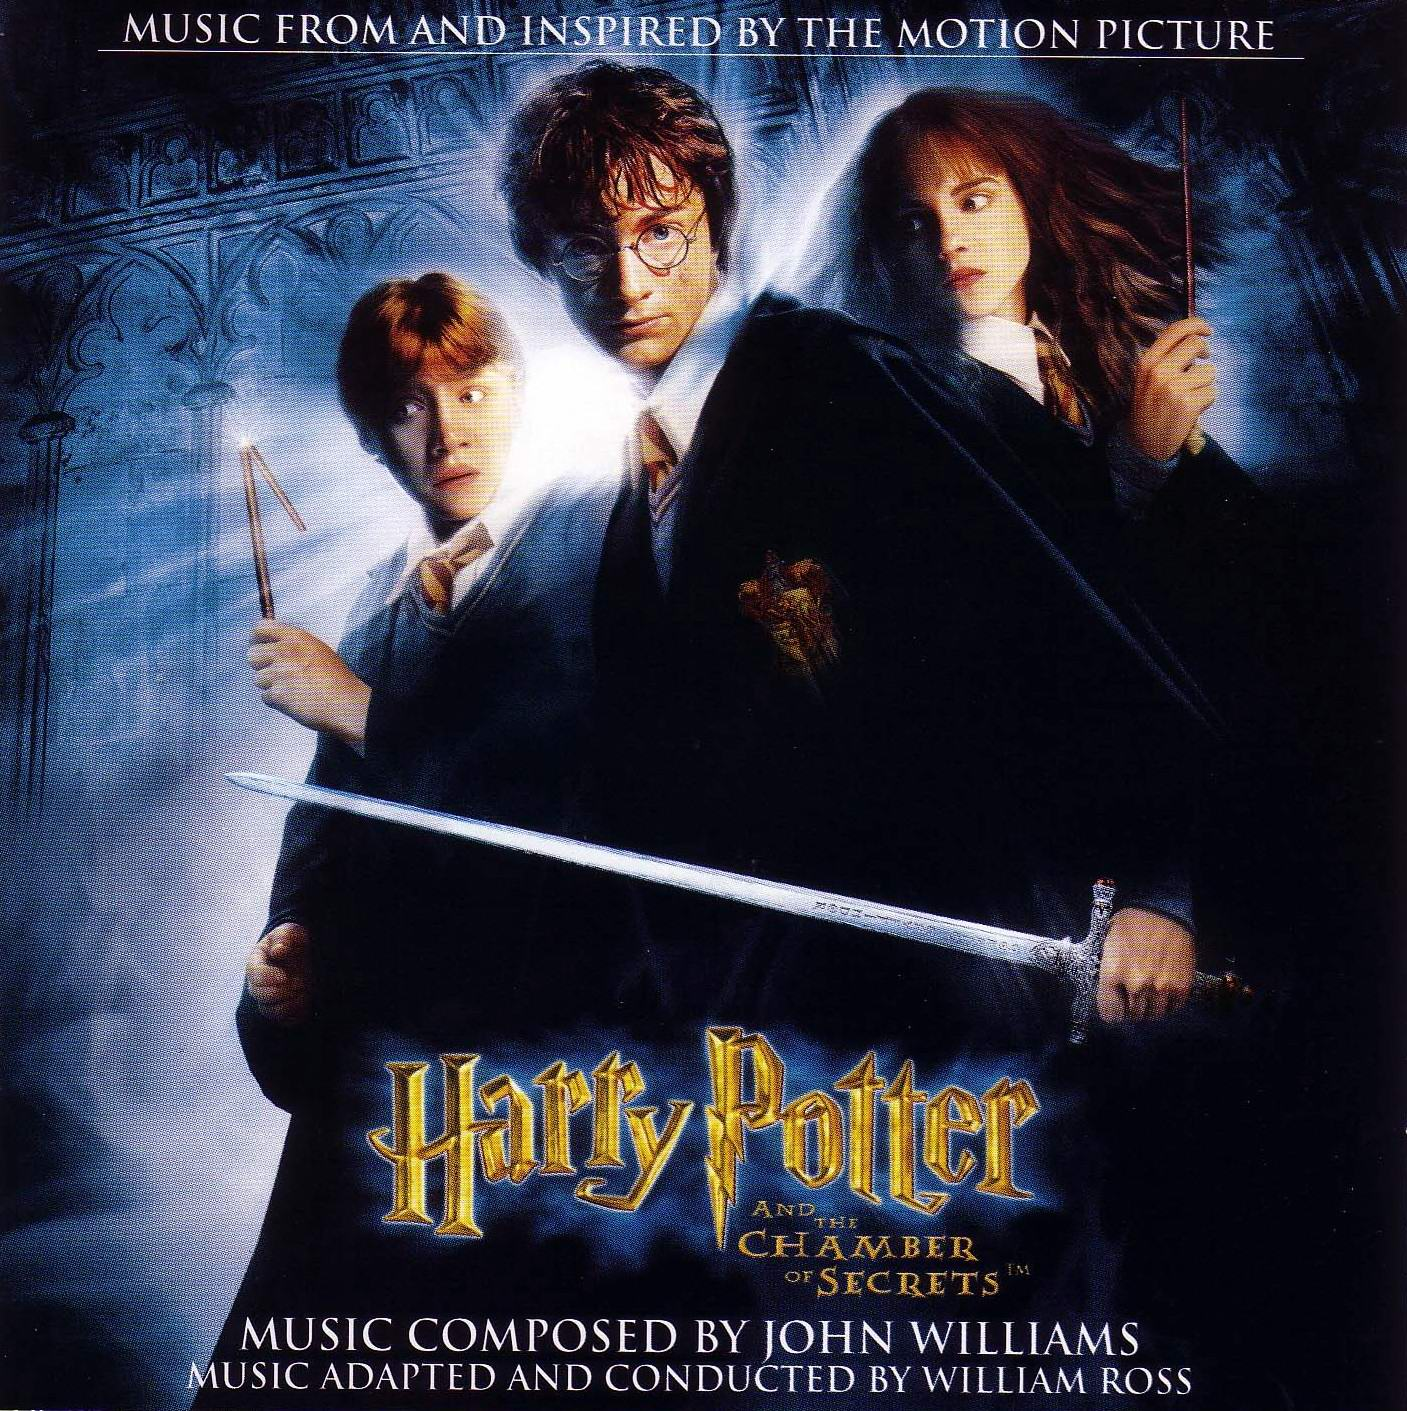 harry potter and the chamber of secrets HD Wallpaper of Music Dance 1407x1411